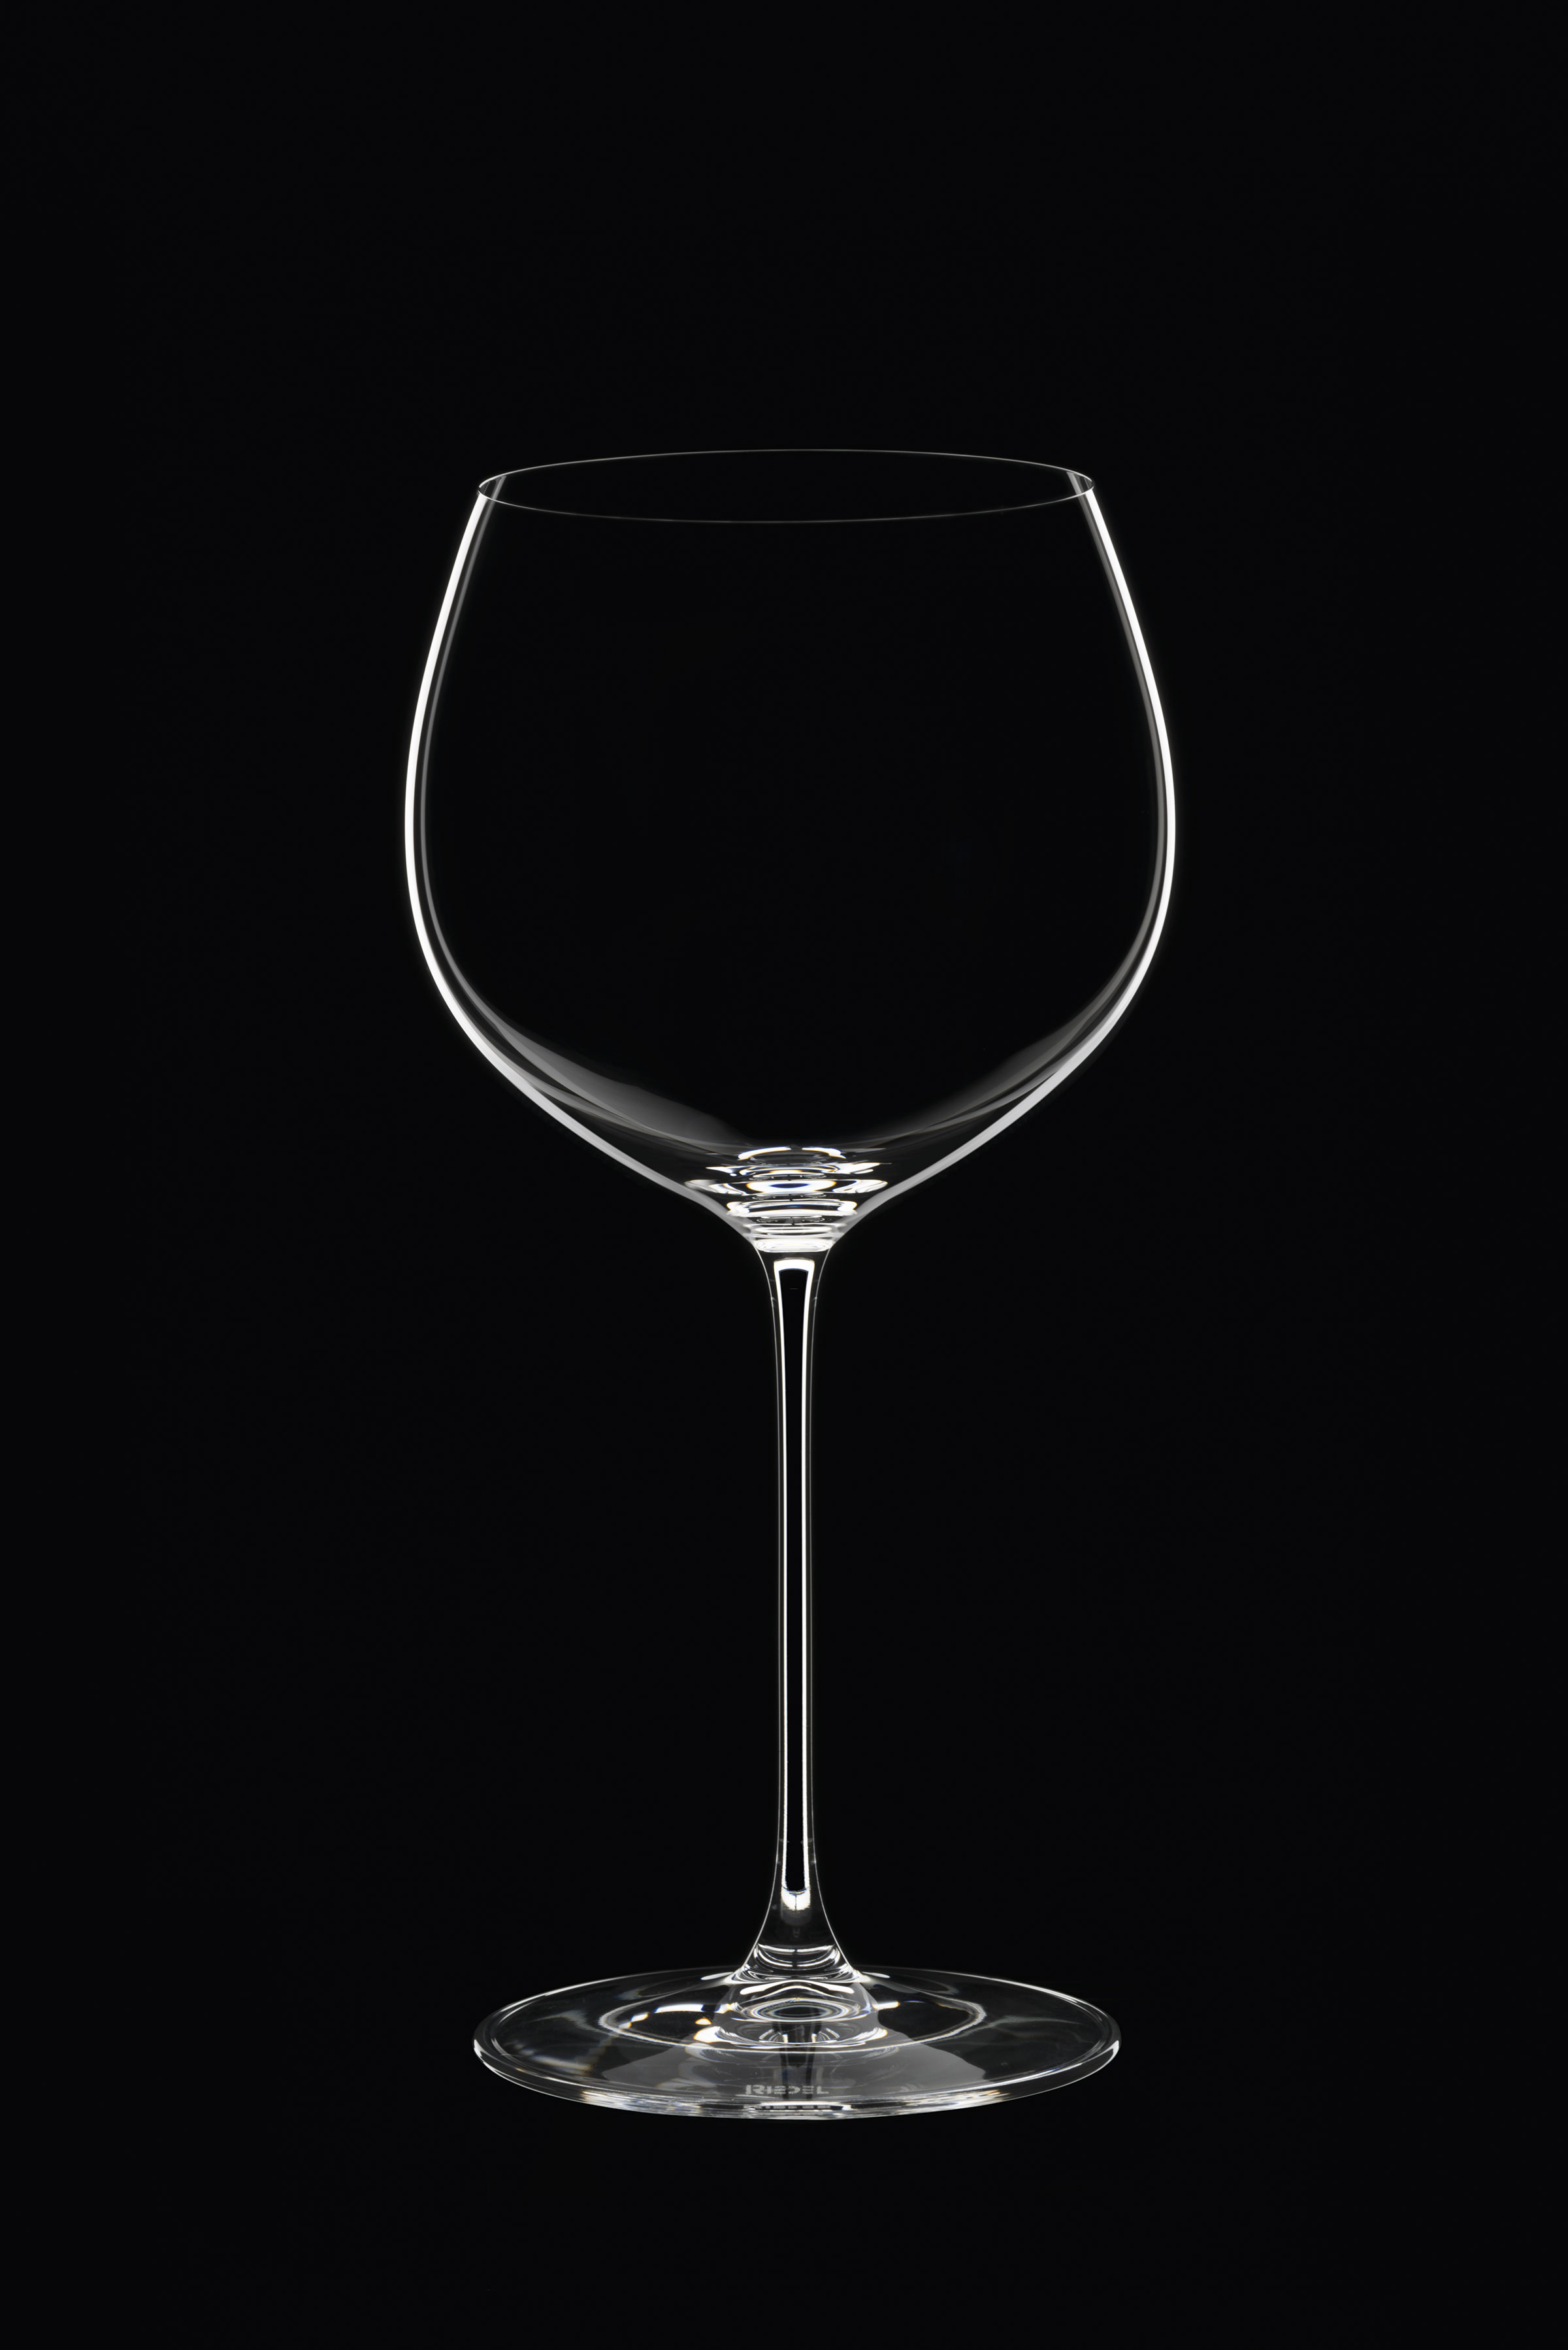 Wine Glass With Wine Part - 29: Riedelu0027s Veritas Oaked Chardonnay Wine Glass Glass Is Ideal For A  Meursault, A Montrachet Or